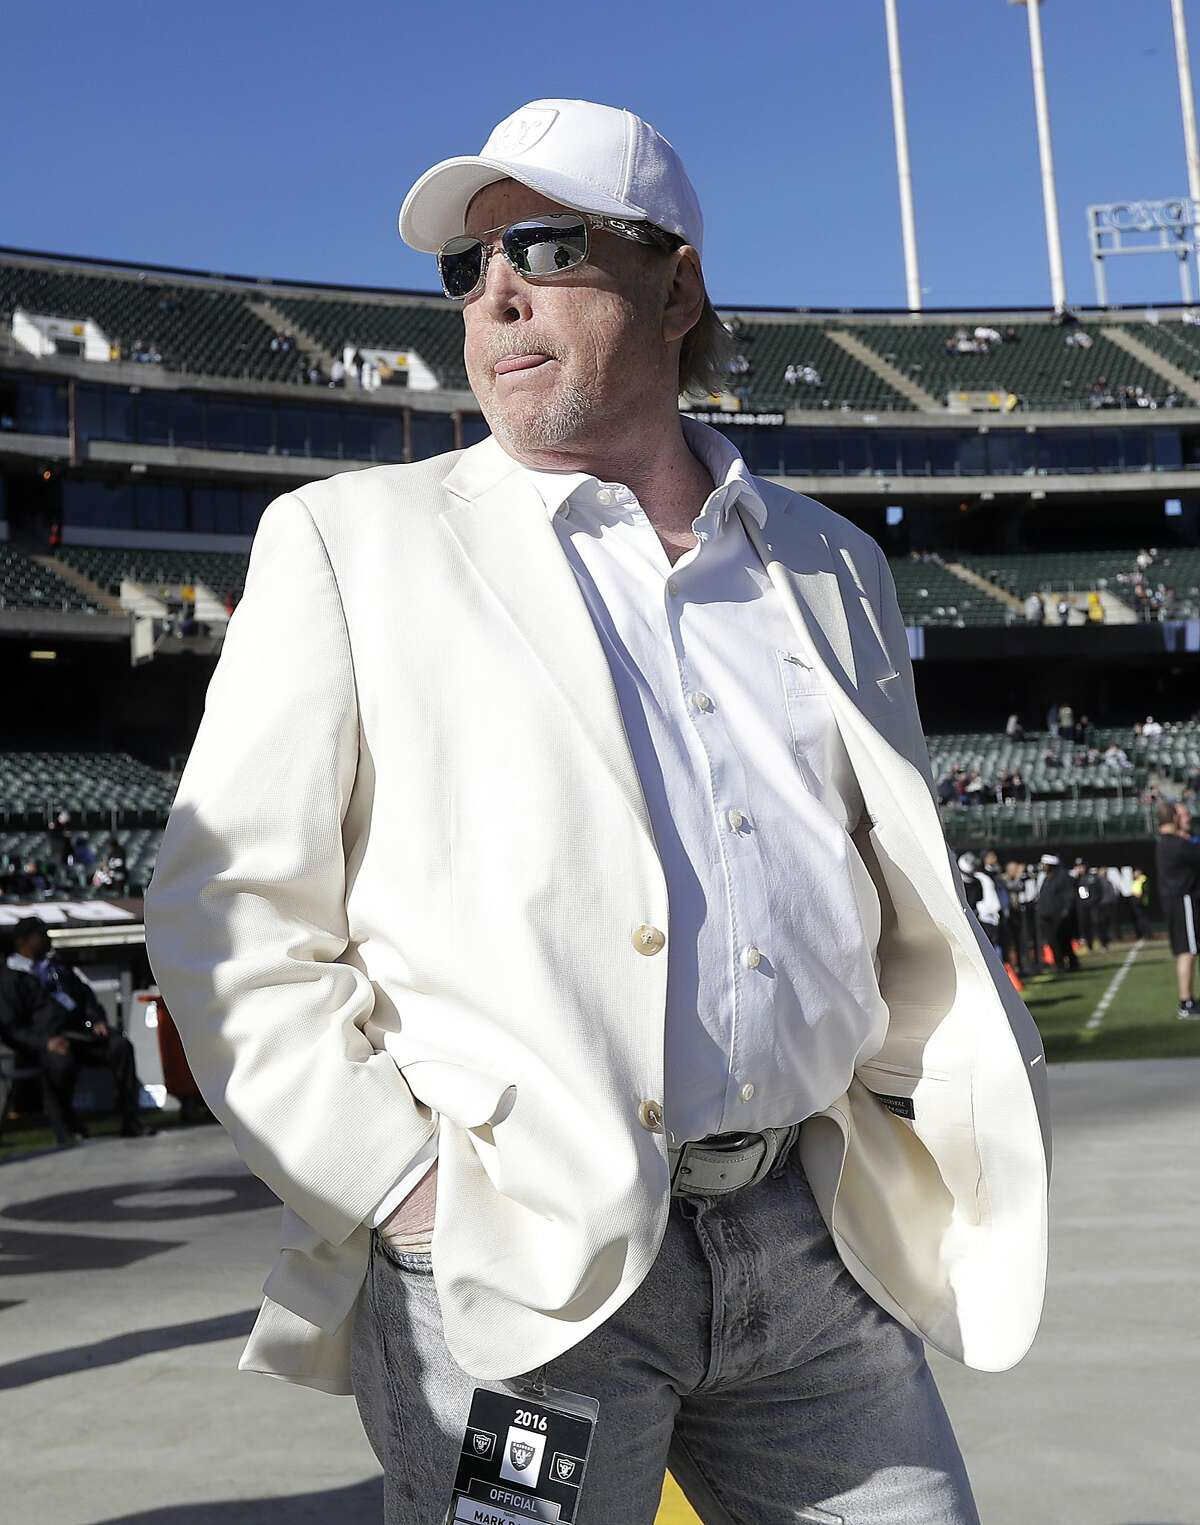 Oakland Raiders owner Mark Davis before an NFL football game between the Oakland Raiders and the Indianapolis Colts in Oakland, Calif., Saturday, Dec. 24, 2016. (AP Photo/Marcio Jose Sanchez)